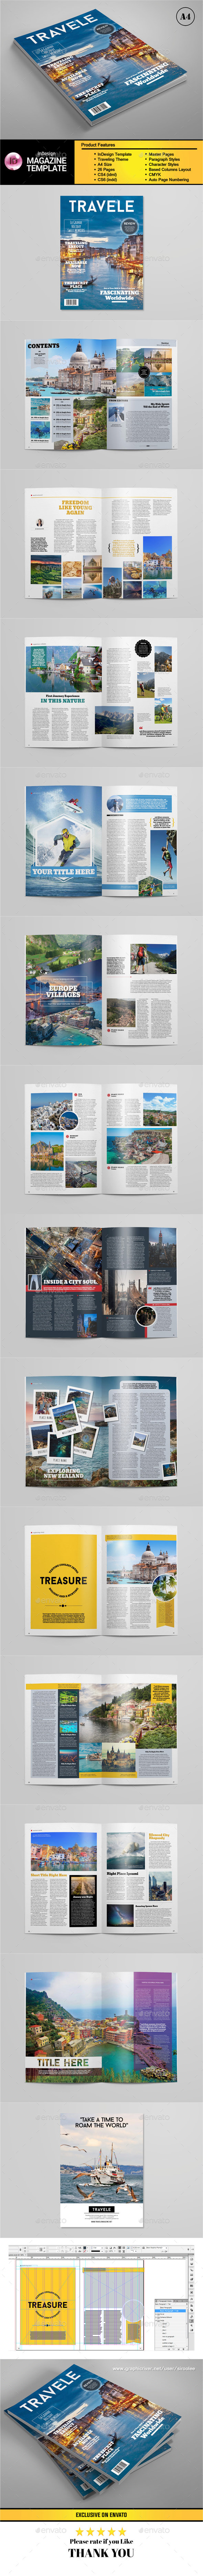 A4 Traveling Magazine Template